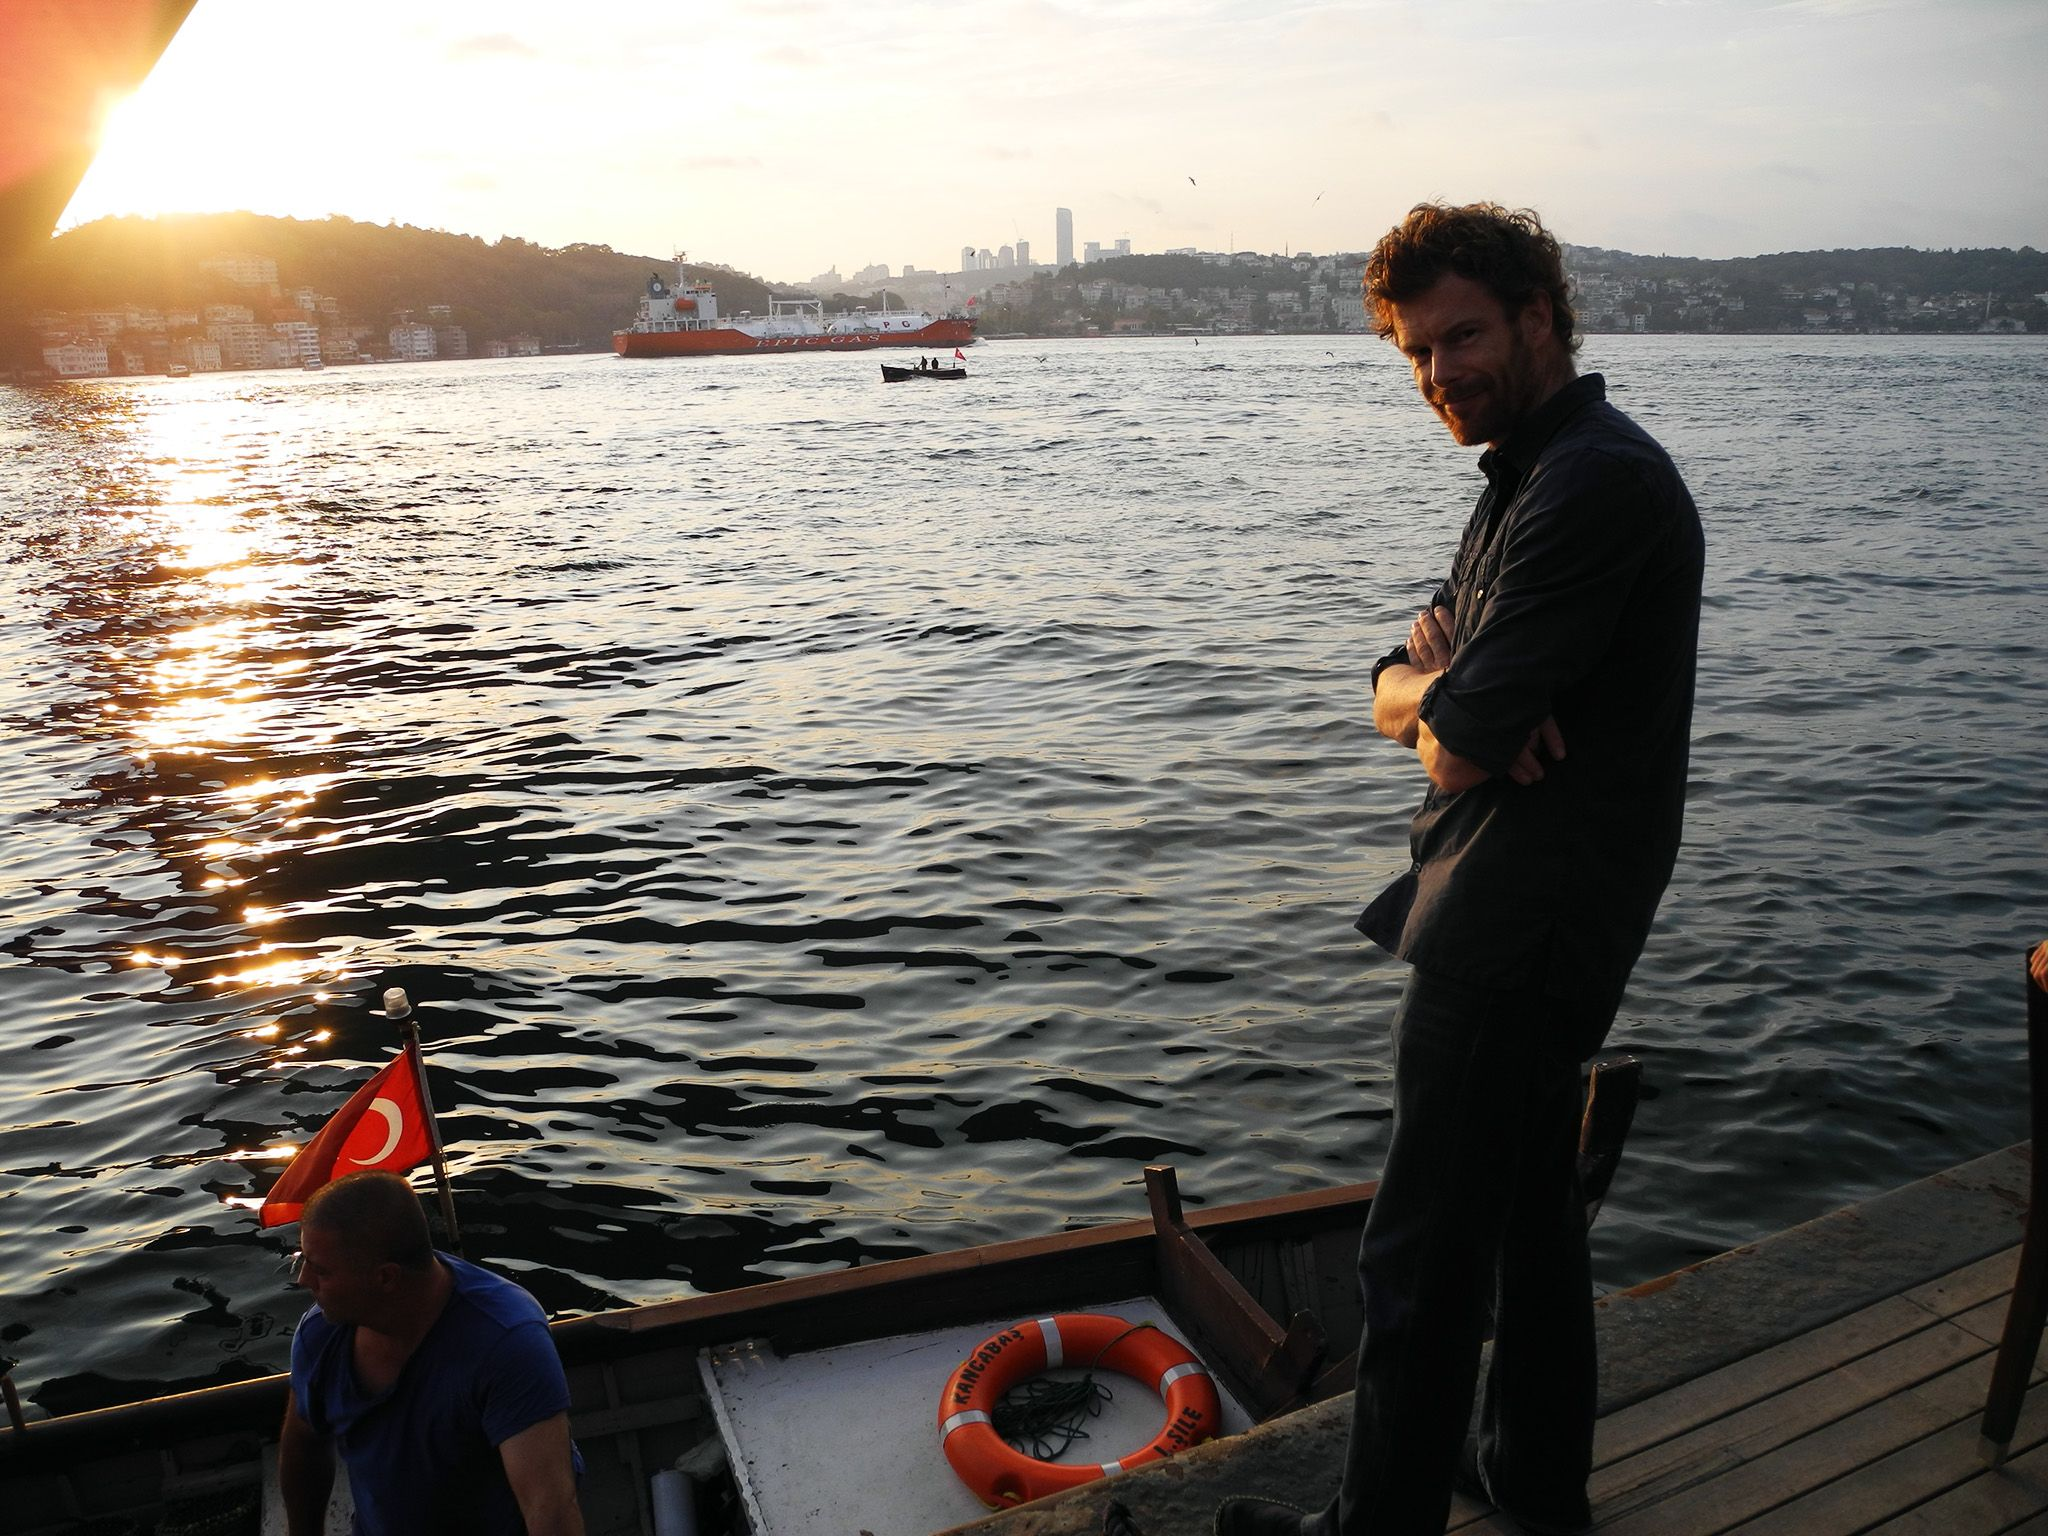 In this episode, Tom is on exploration for Istanbul's essential food element – Water.... [Photo of the day - October 2015]